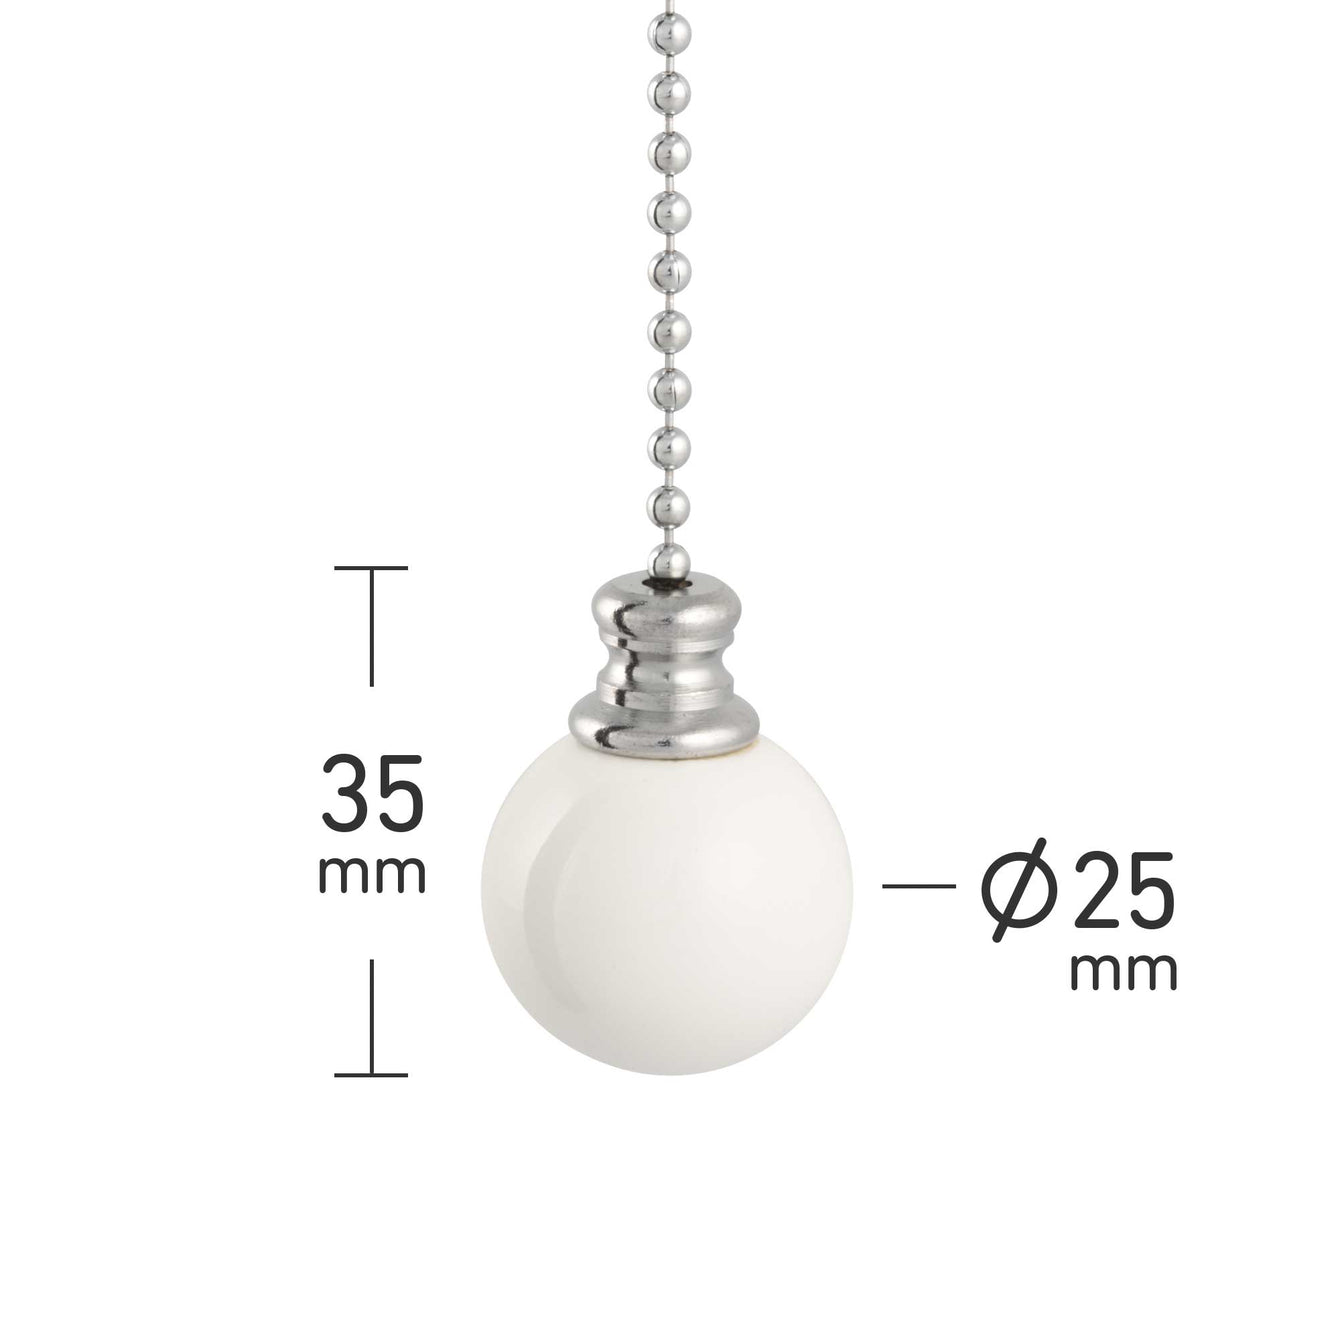 ElekTek Light Pull Chain Ball With 80cm Matching Chain - Buy It Better Dark Oak